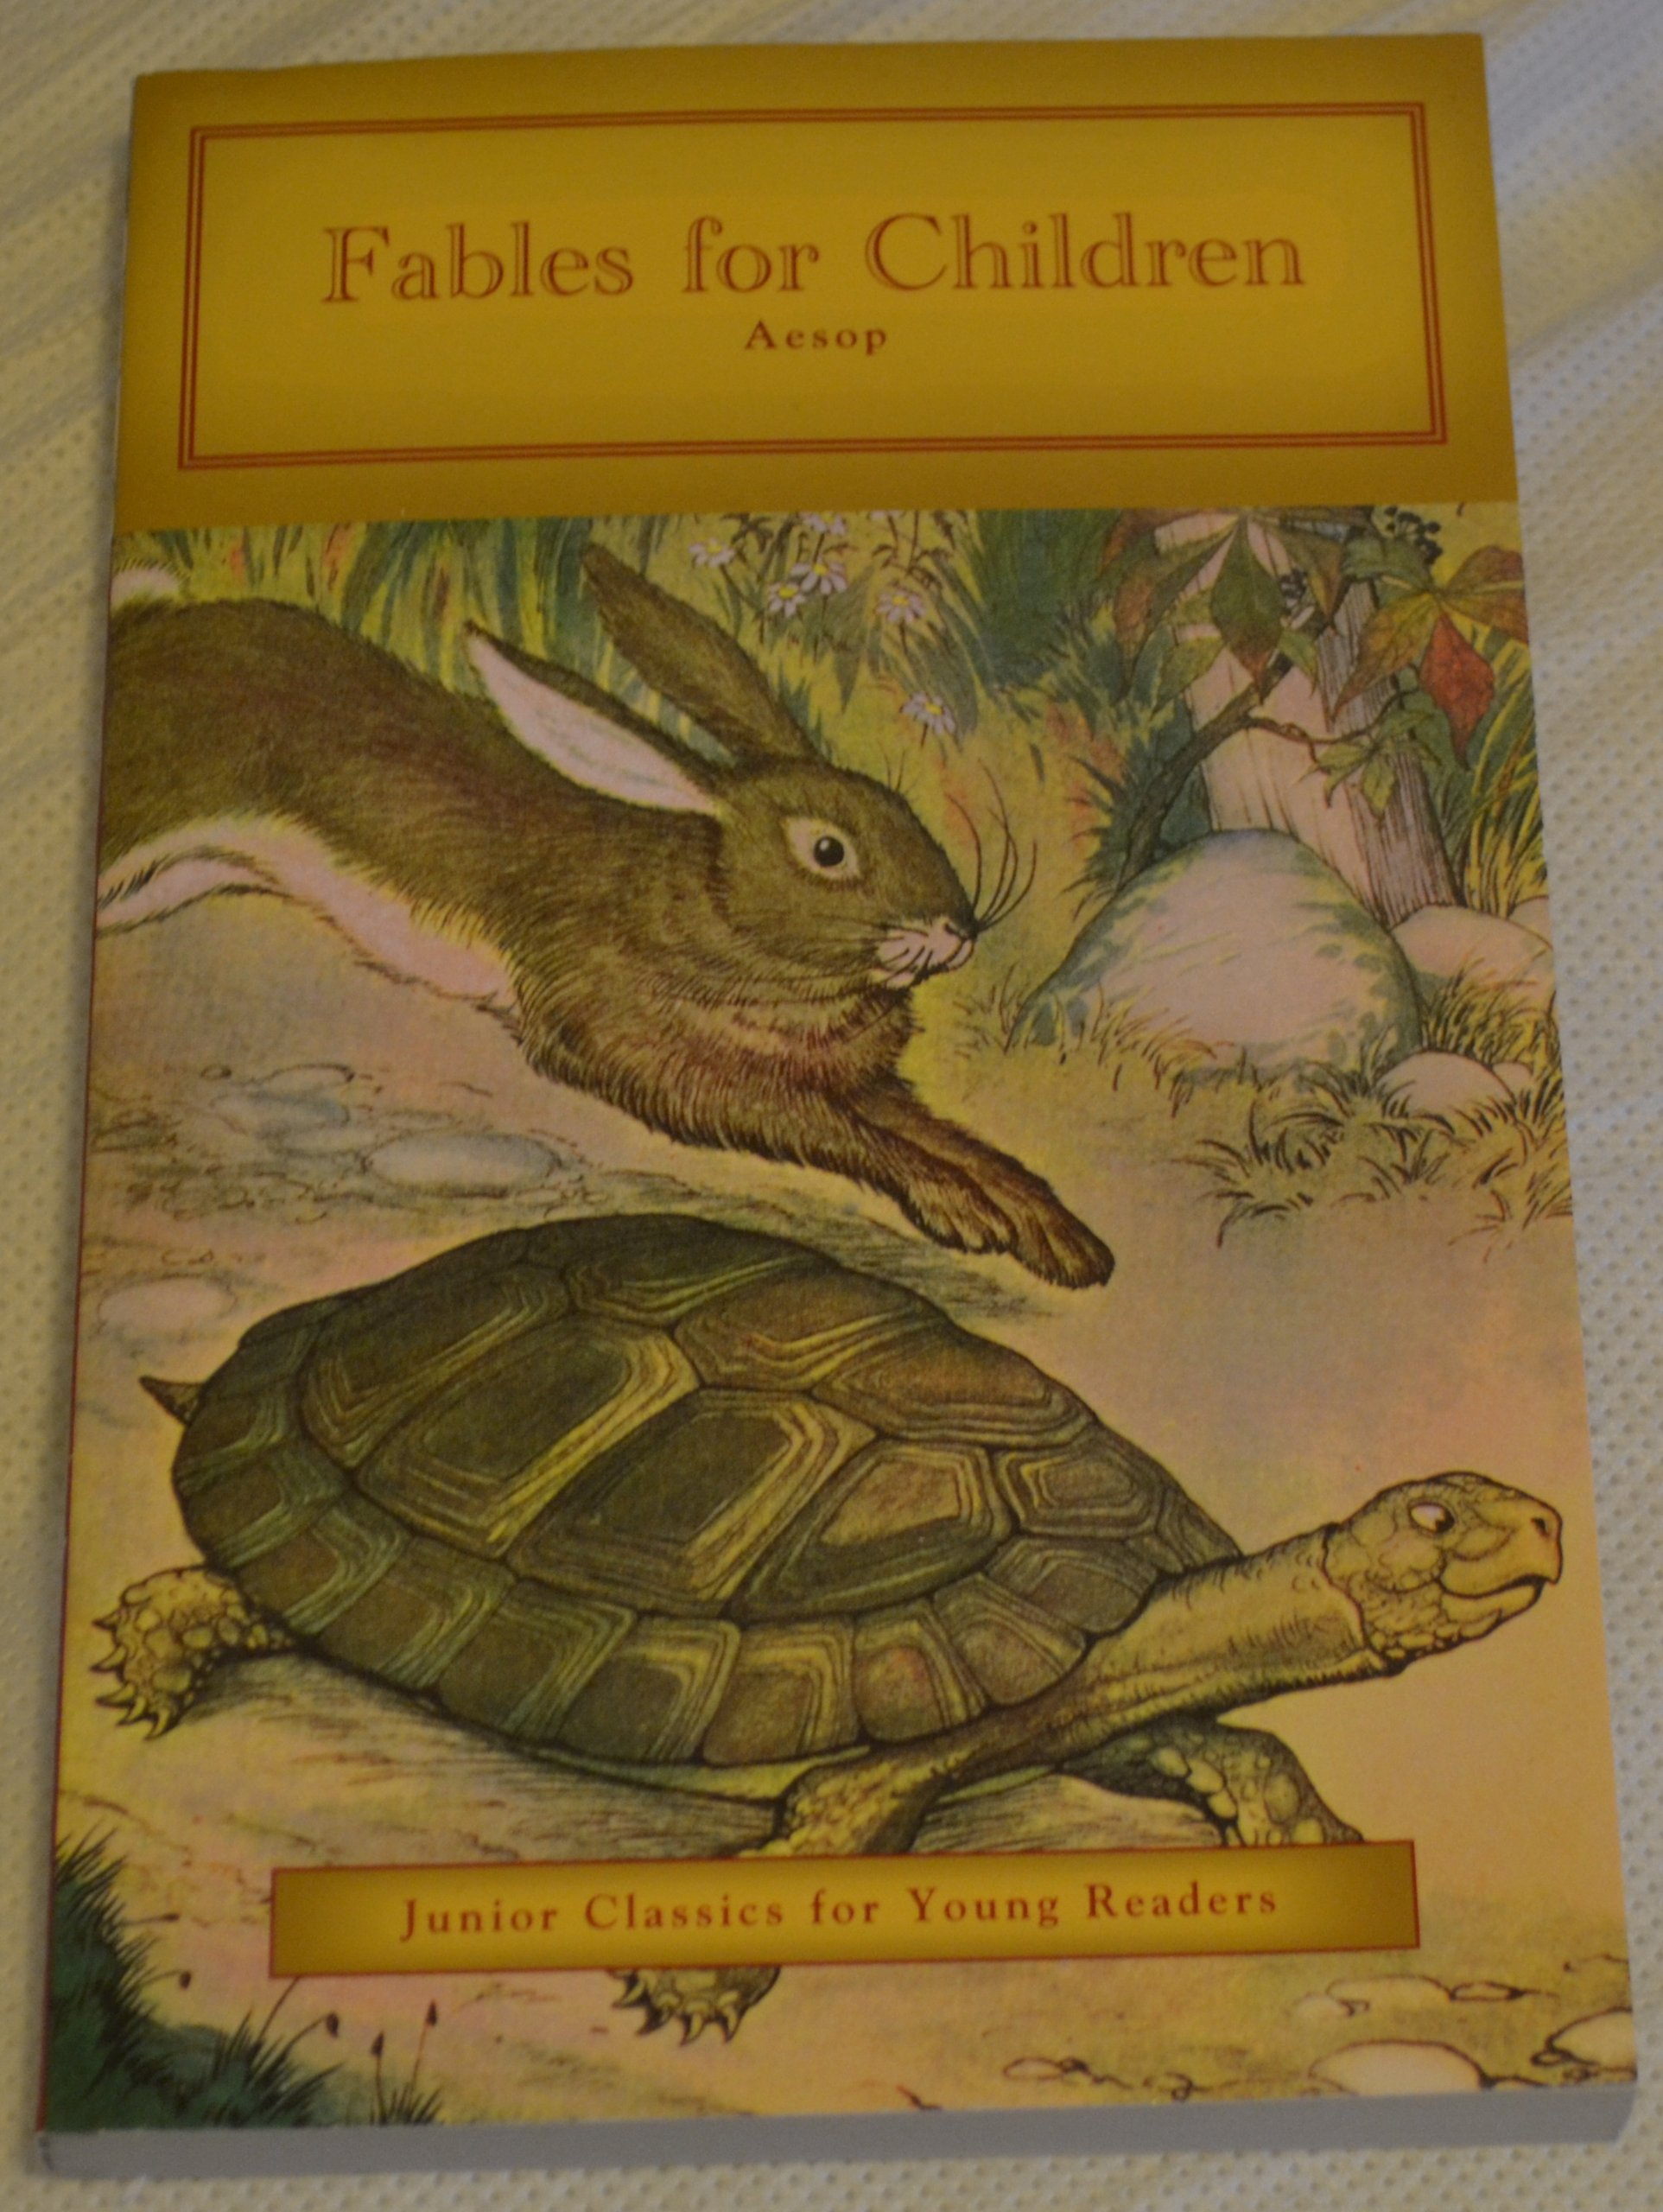 Fables for Children Aesop ((Junior Classics for Young Readers)), Kathryn  Knight